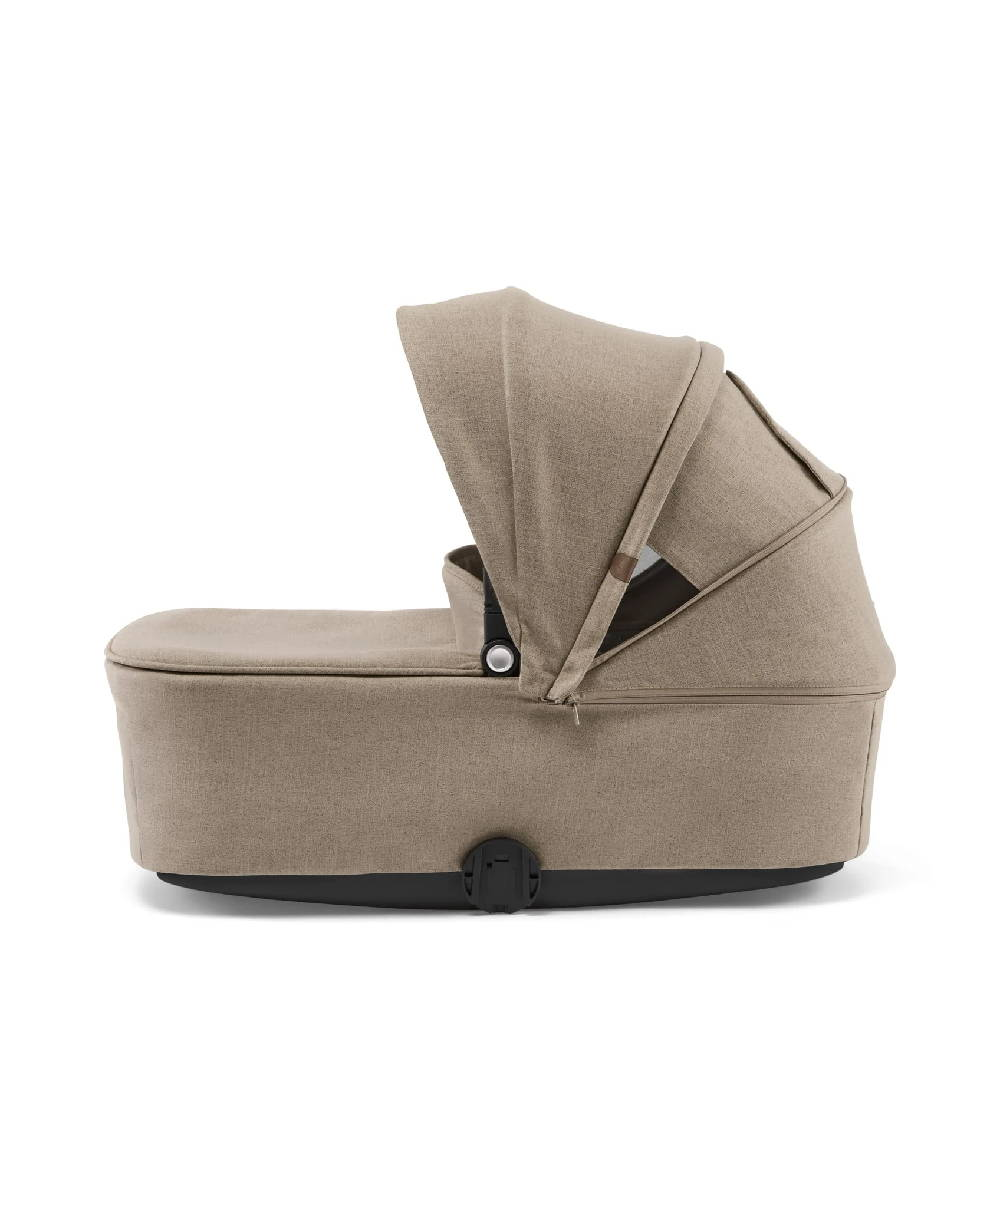 Strada Collapsible Carrycot - Cashmere